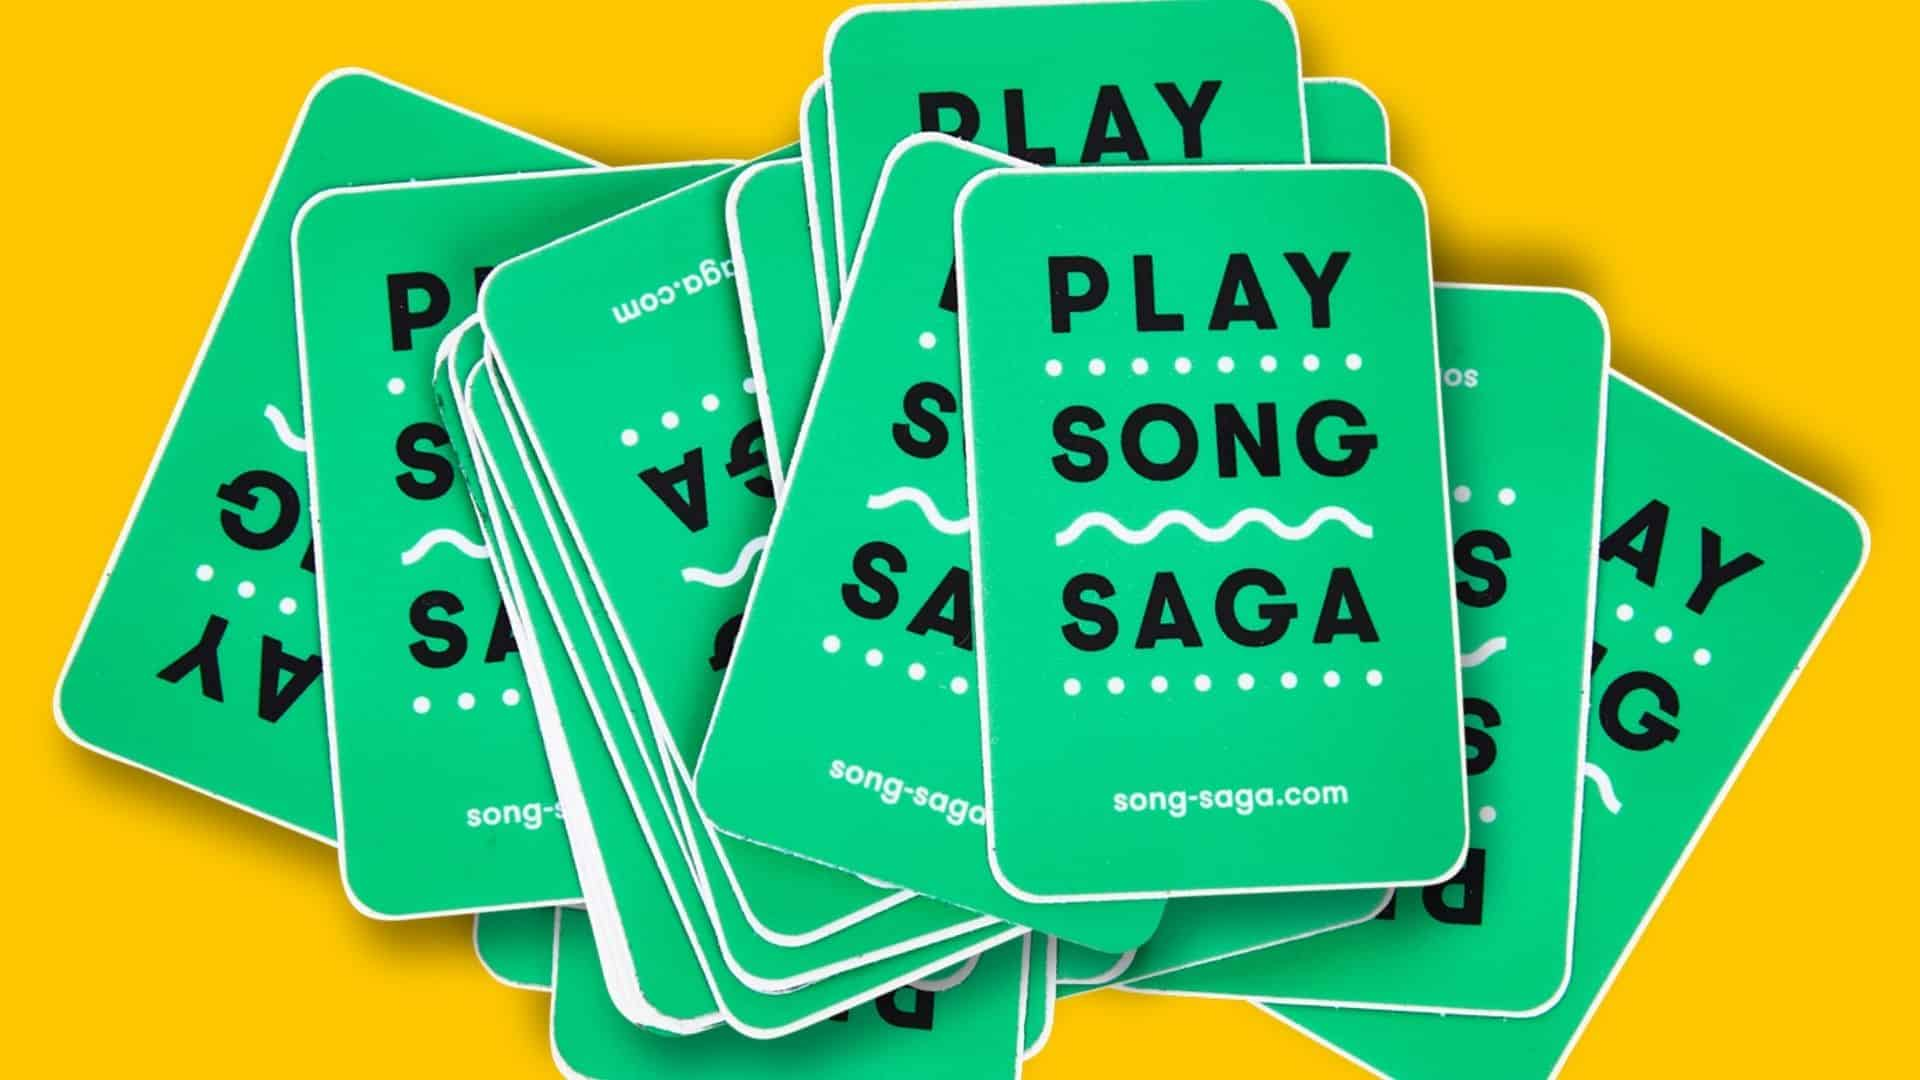 Eleven reasons why you should play Song Saga right now. You won't believe #7.